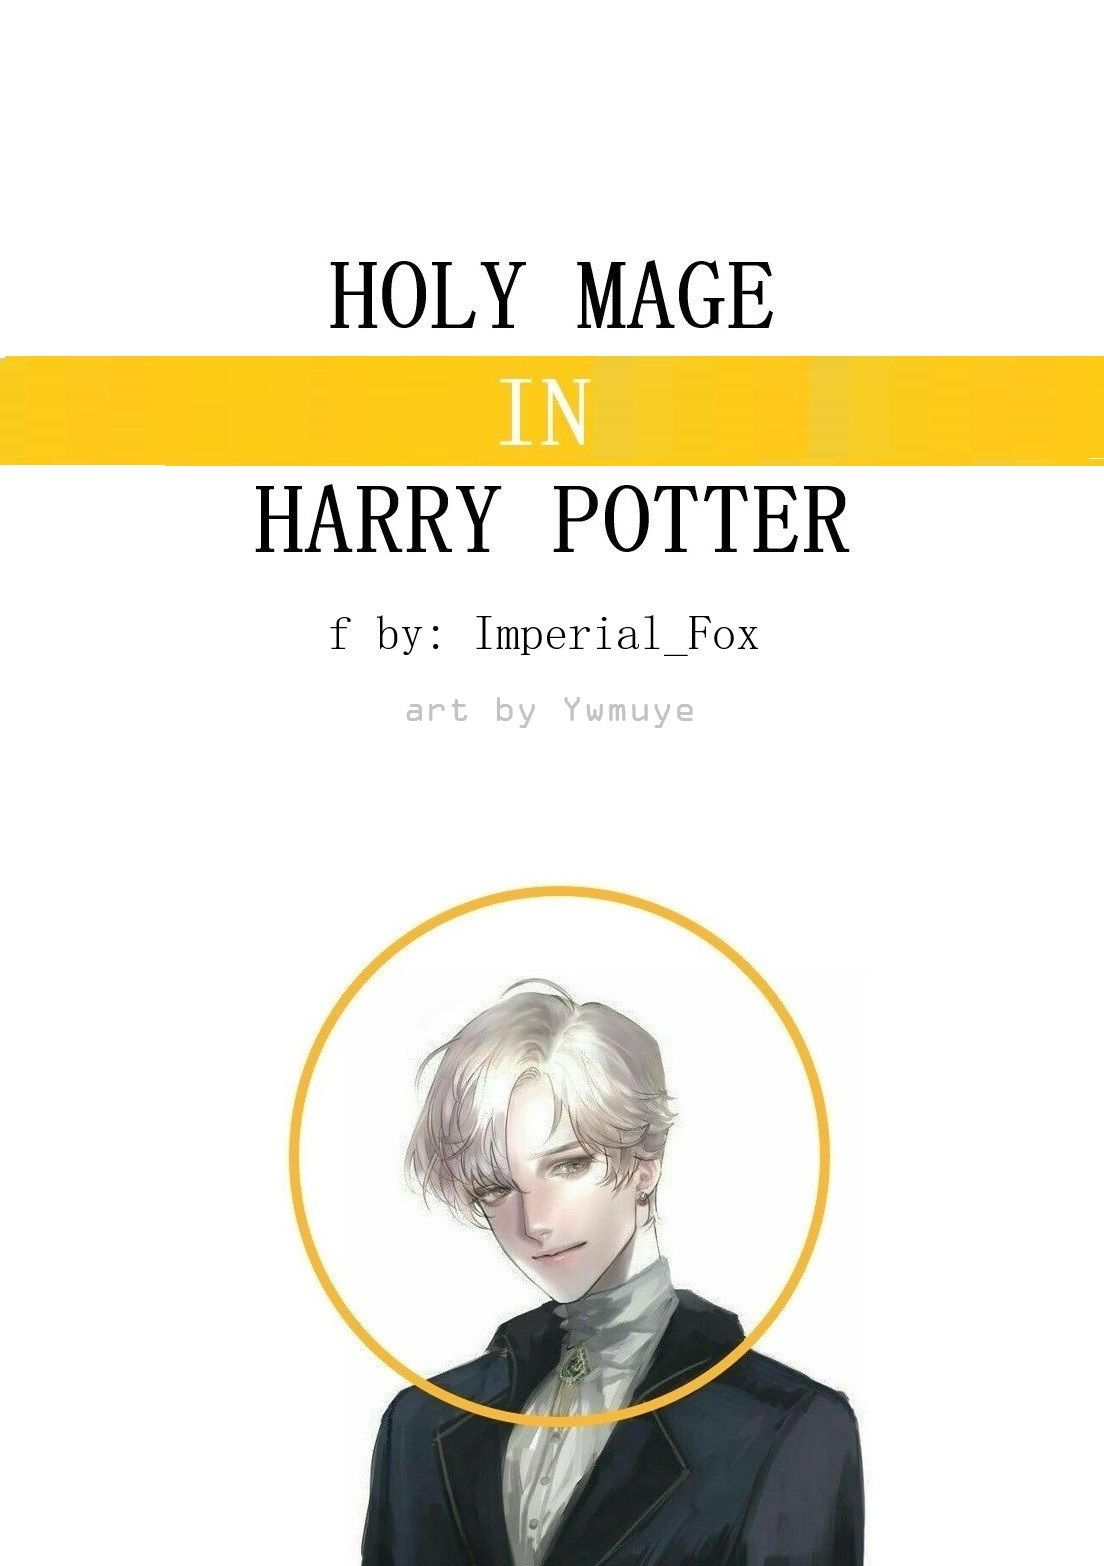 СВЯТОЙ МАГ В ГАРРИ ПОТТЕРЕ / HOLY MAGE IN HARRY POTTER